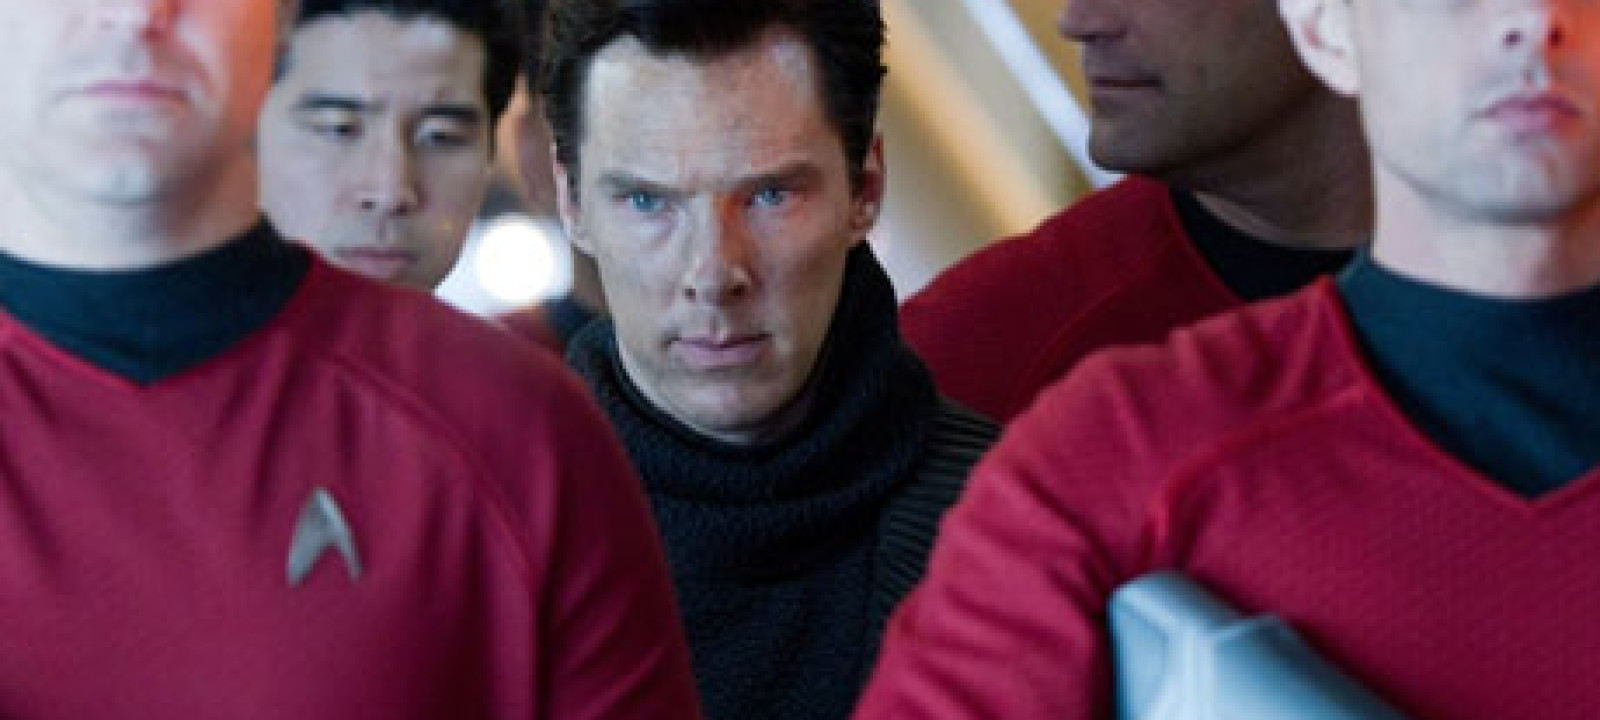 Star Trek, Benedict, Arrested